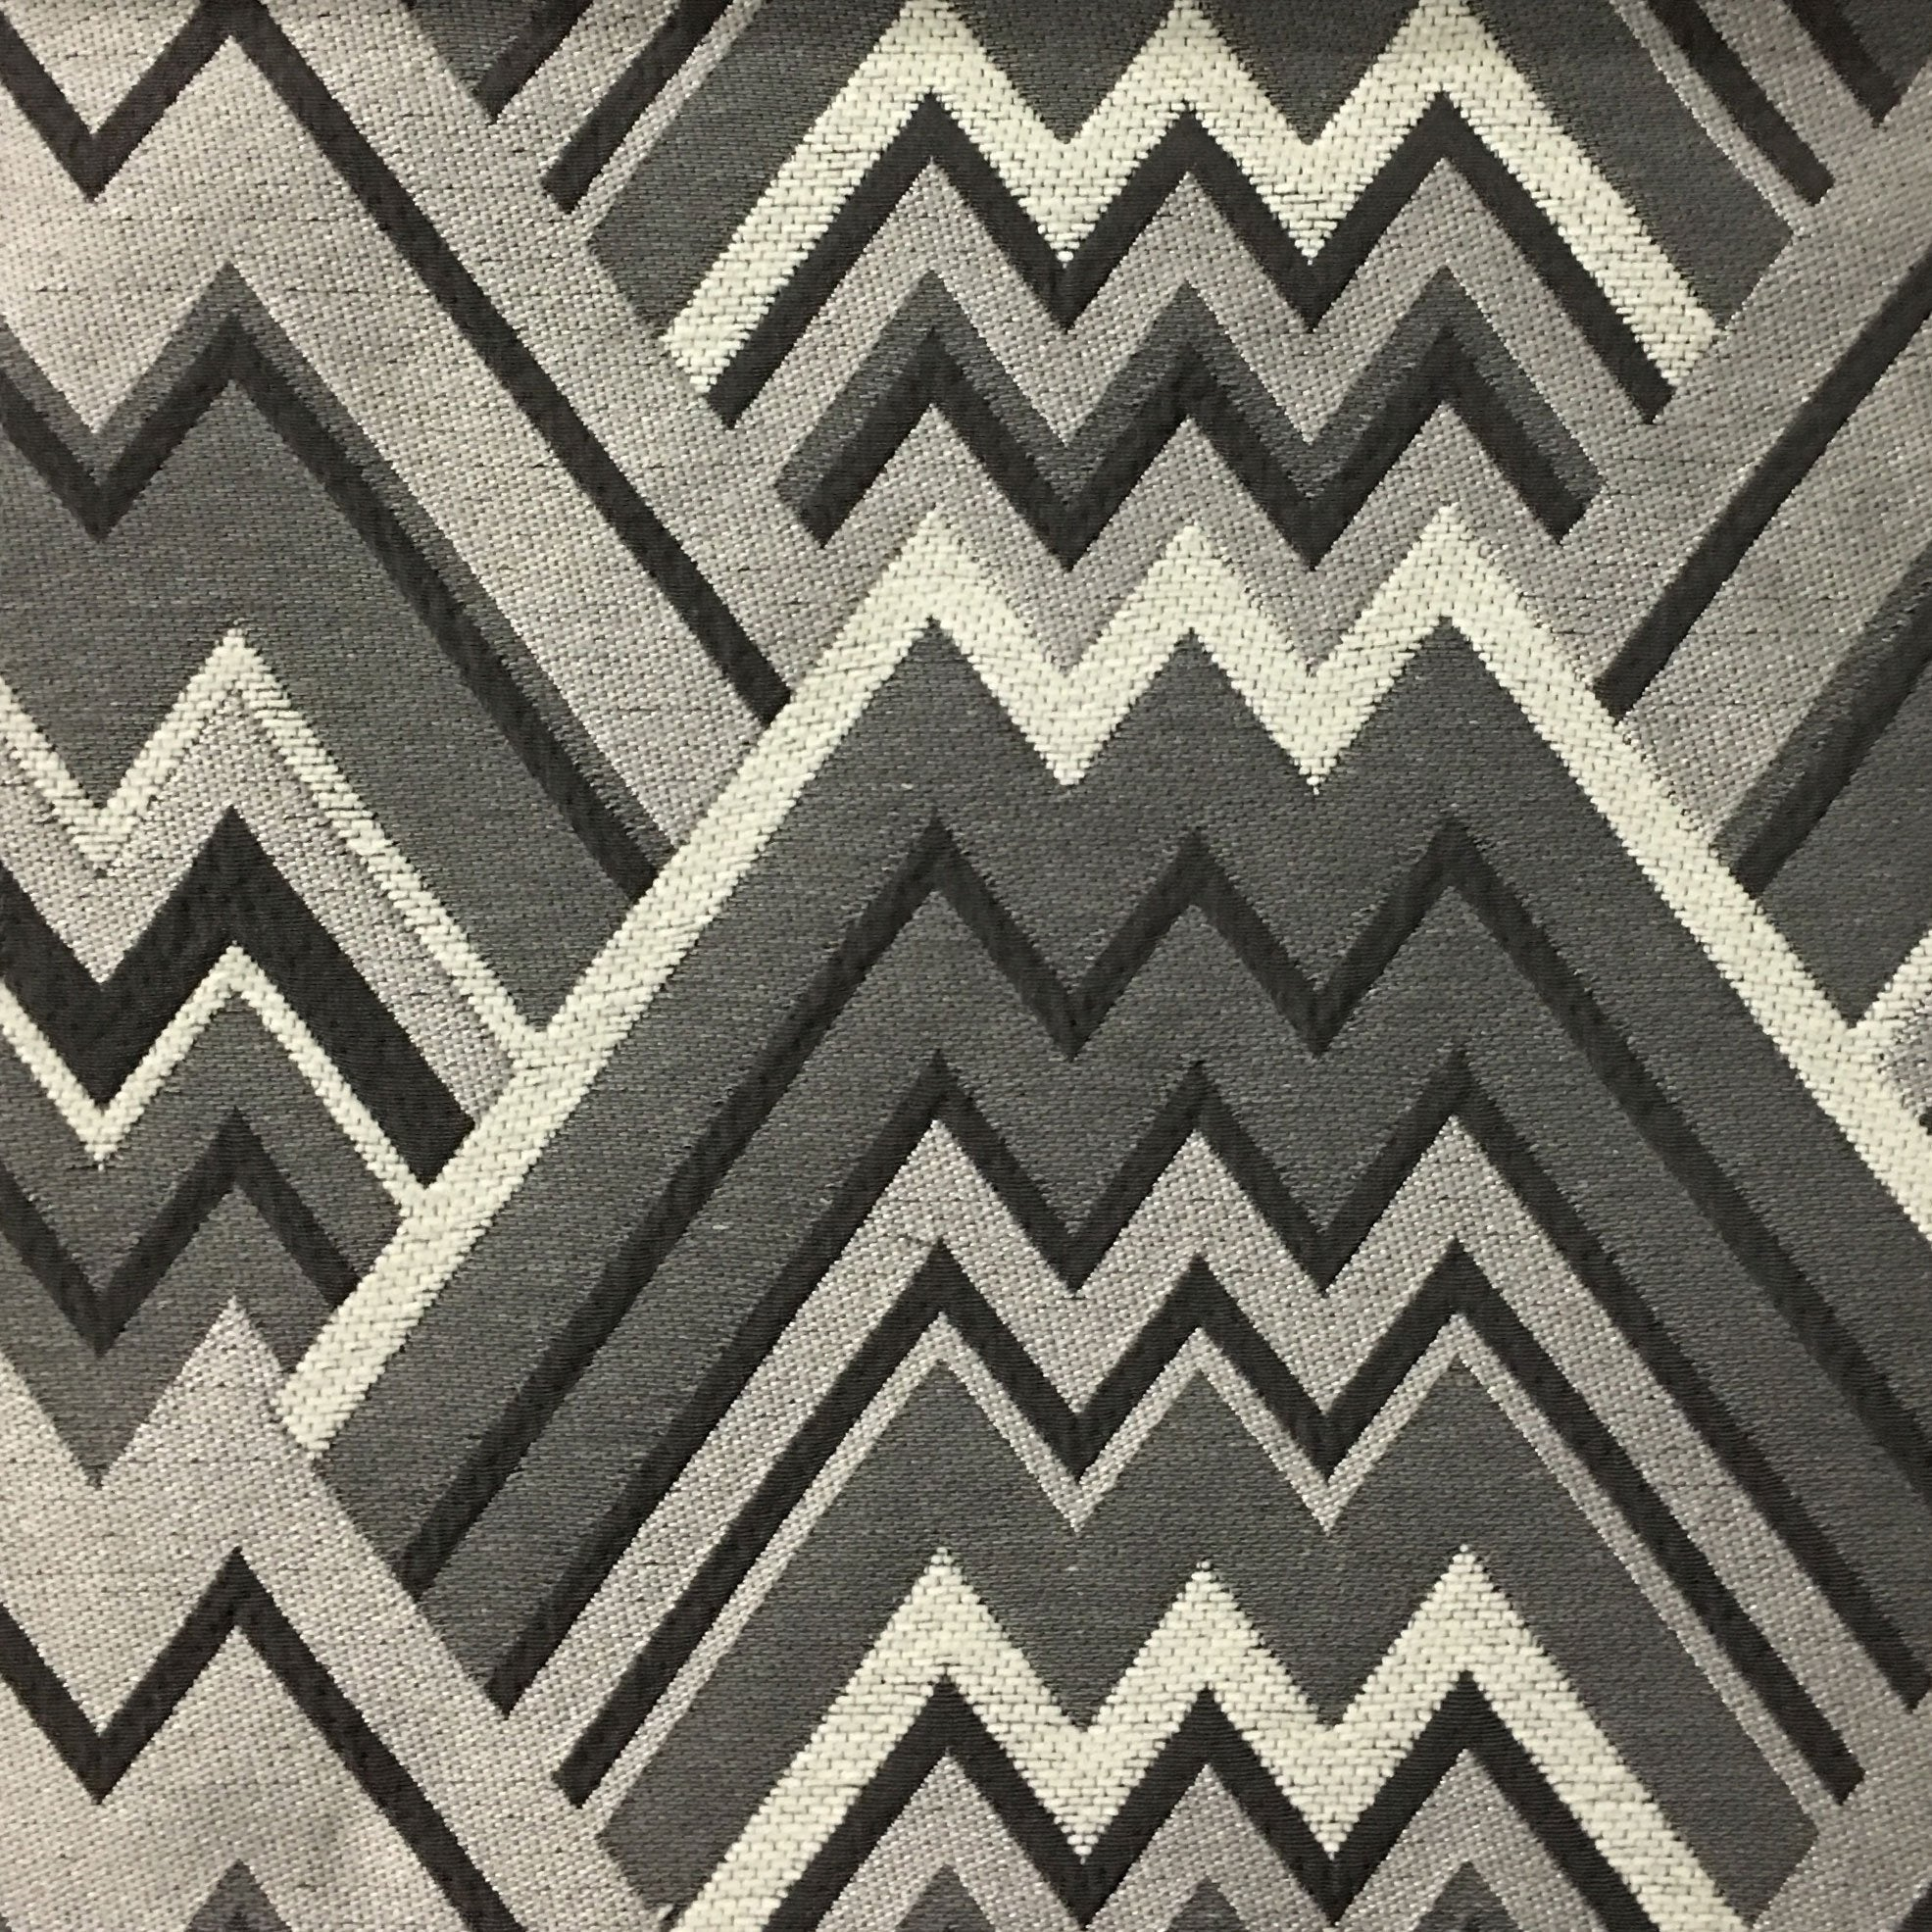 Mixed Construction Geometric Upholstery Fabric By